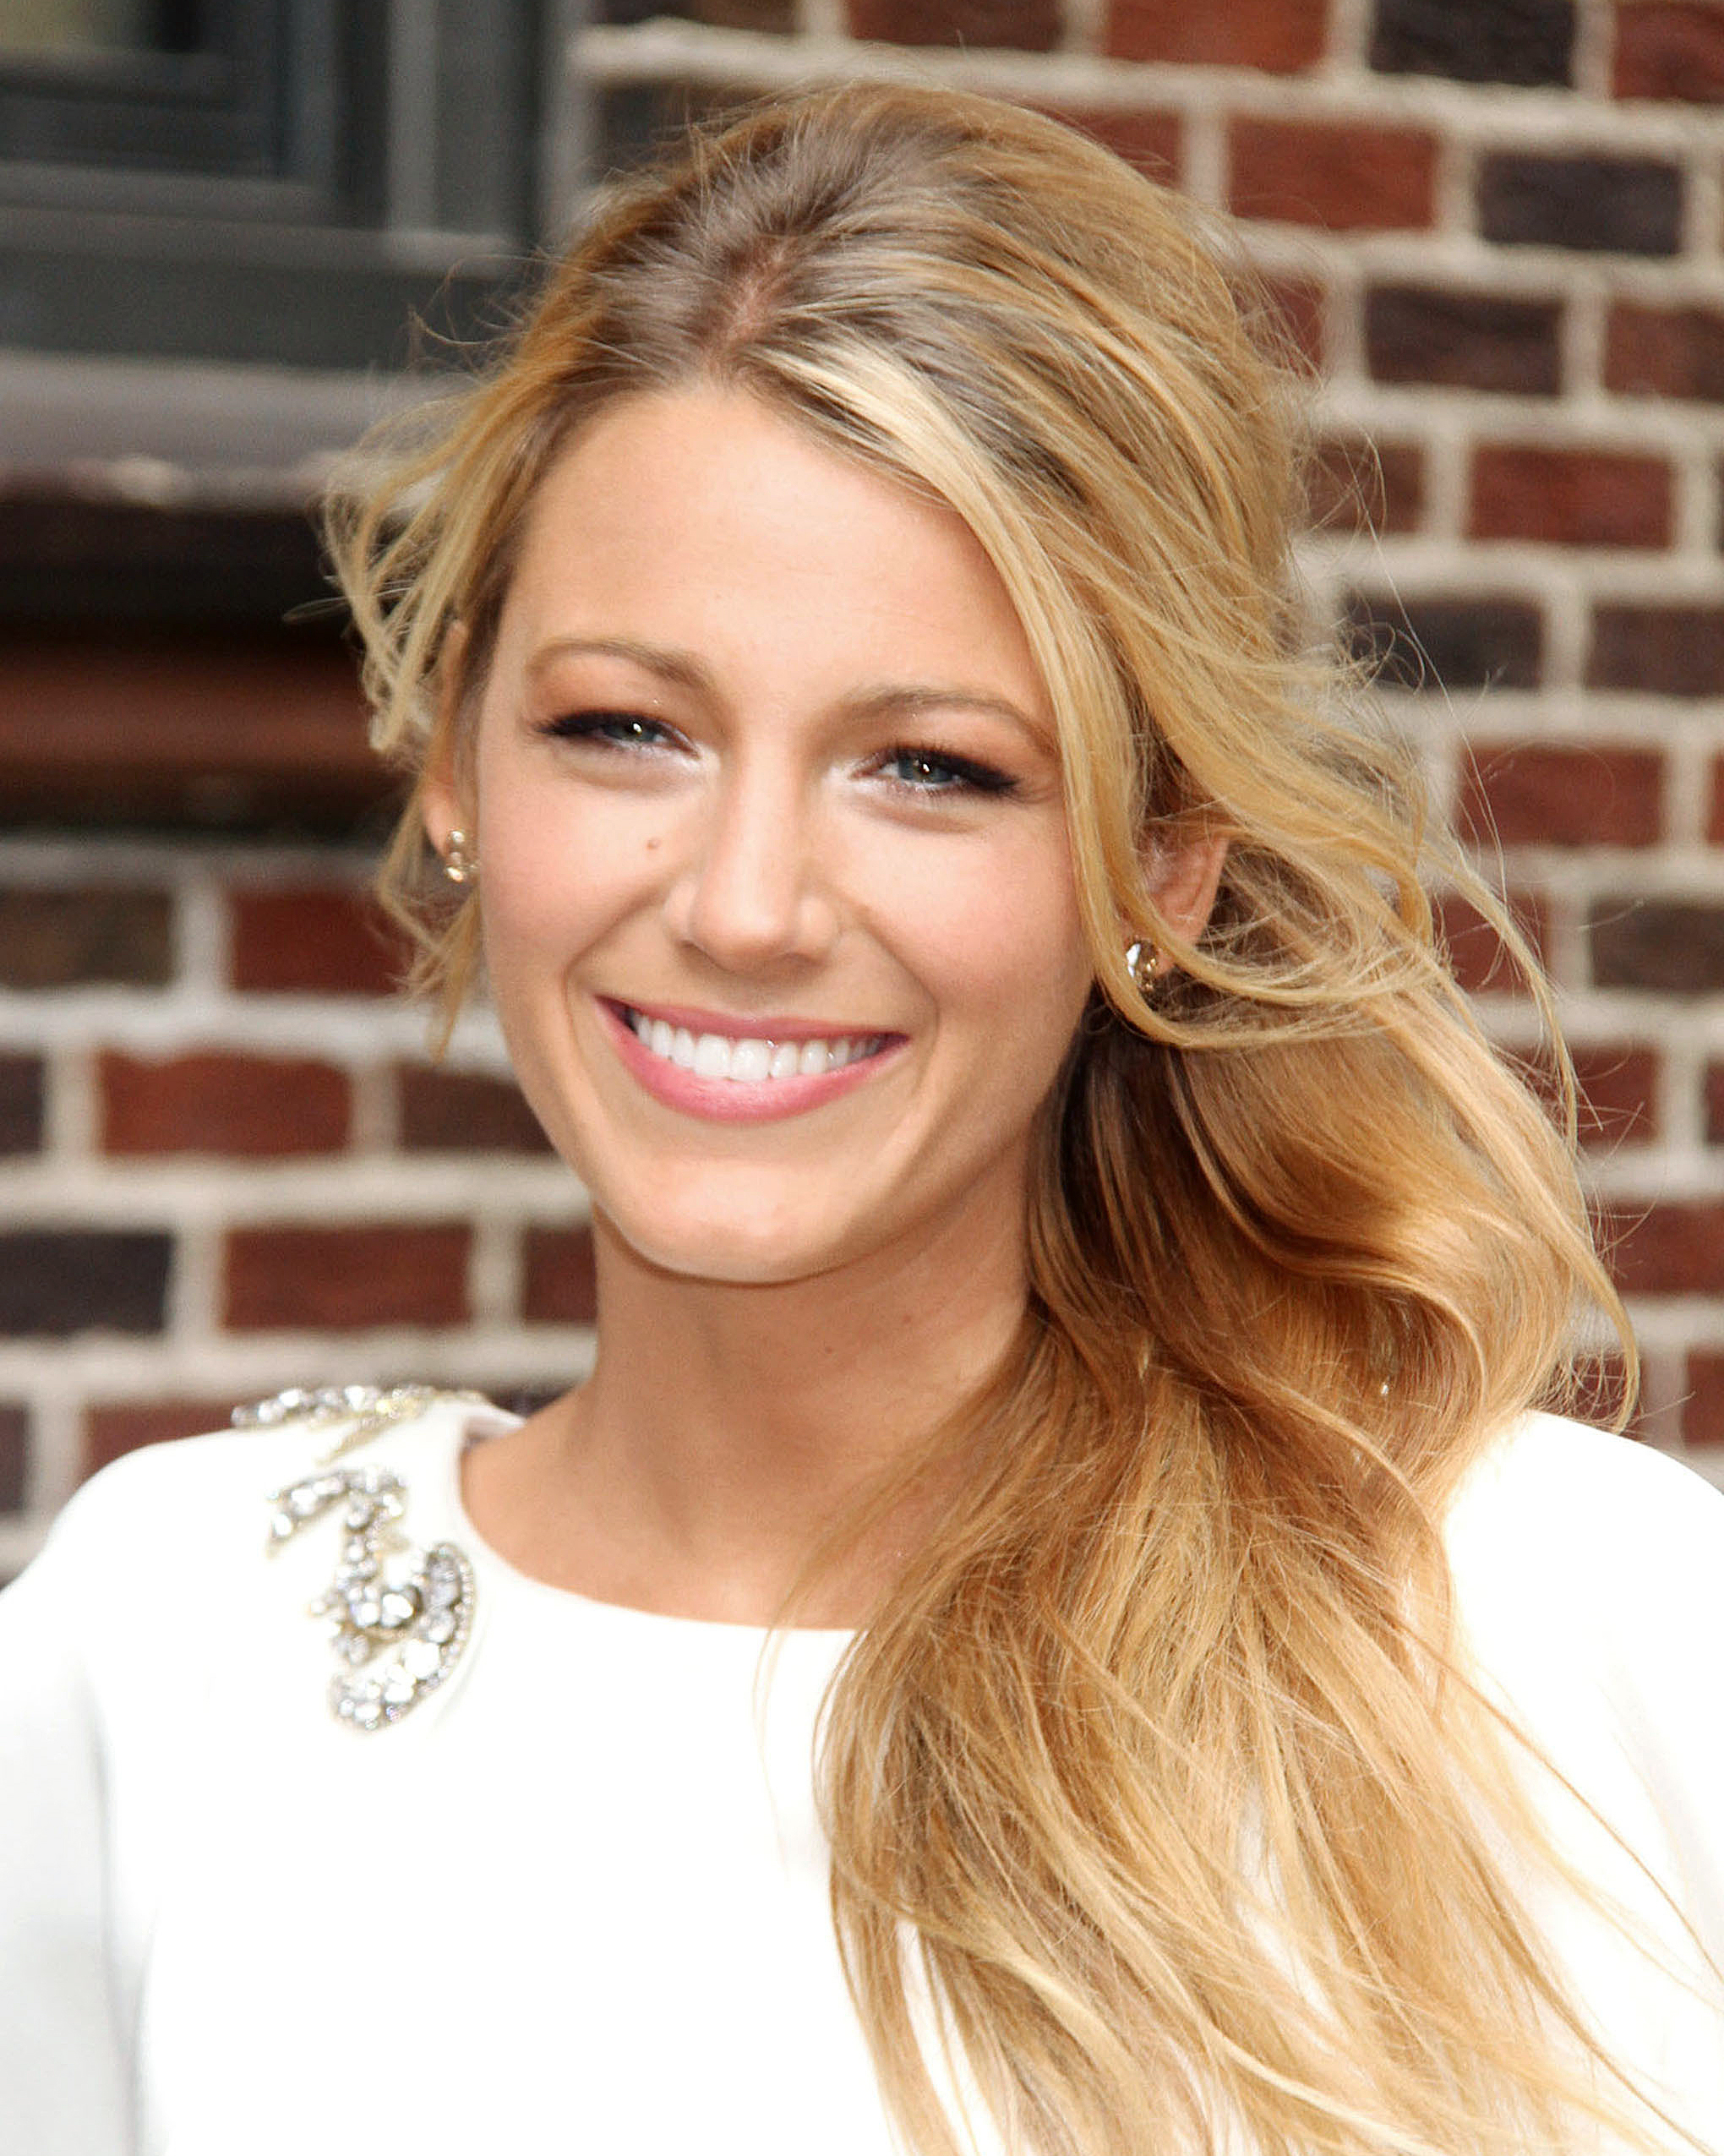 Getting Real with Blake Lively